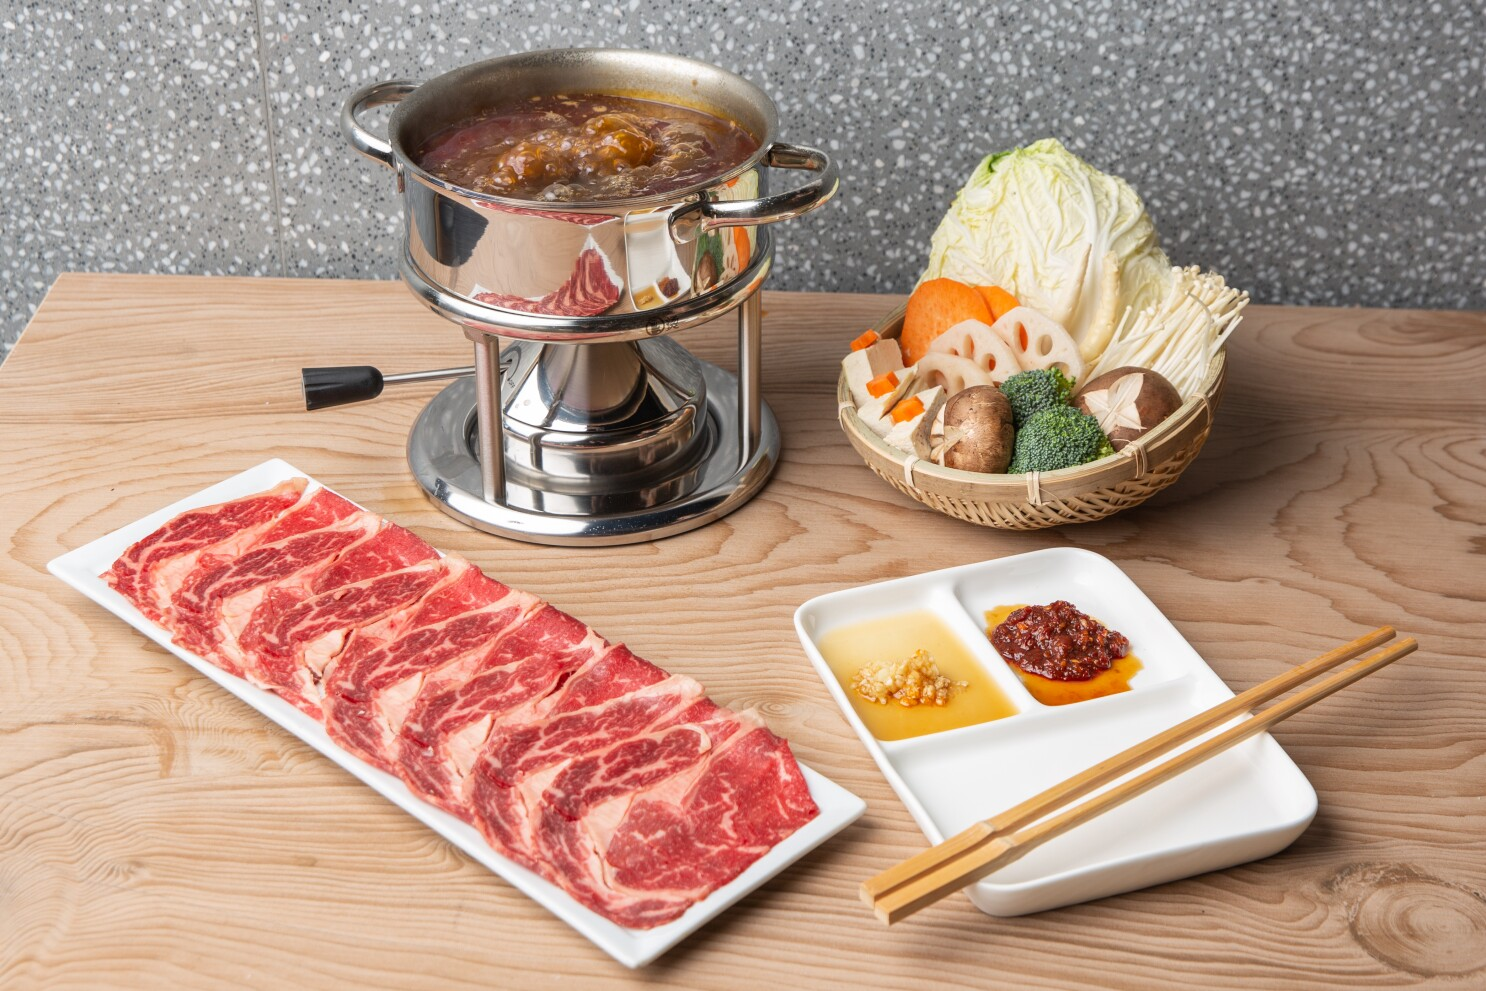 Sichuan hot pot restaurant Mala Town comes to Sawtelle; Filipino lunch counter opens downtown - Los Angeles T